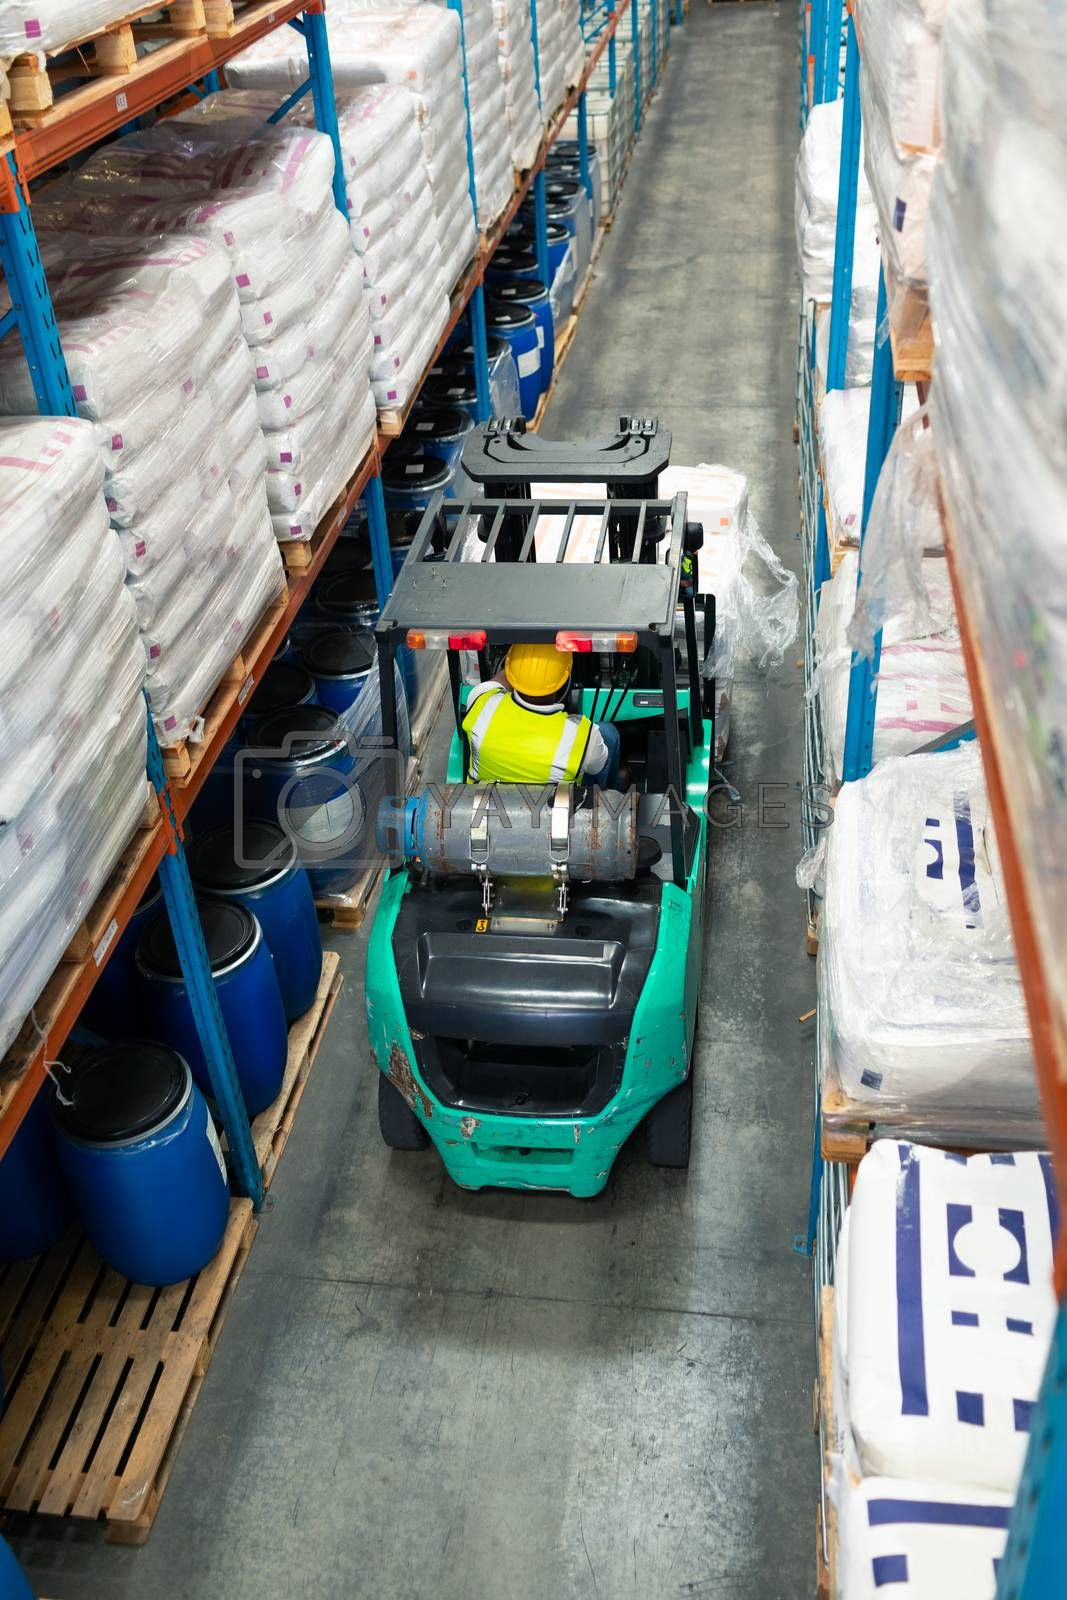 High angle rear view of African-american male worker driving forklift in warehouse. This is a freight transportation and distribution warehouse. Industrial and industrial workers concept